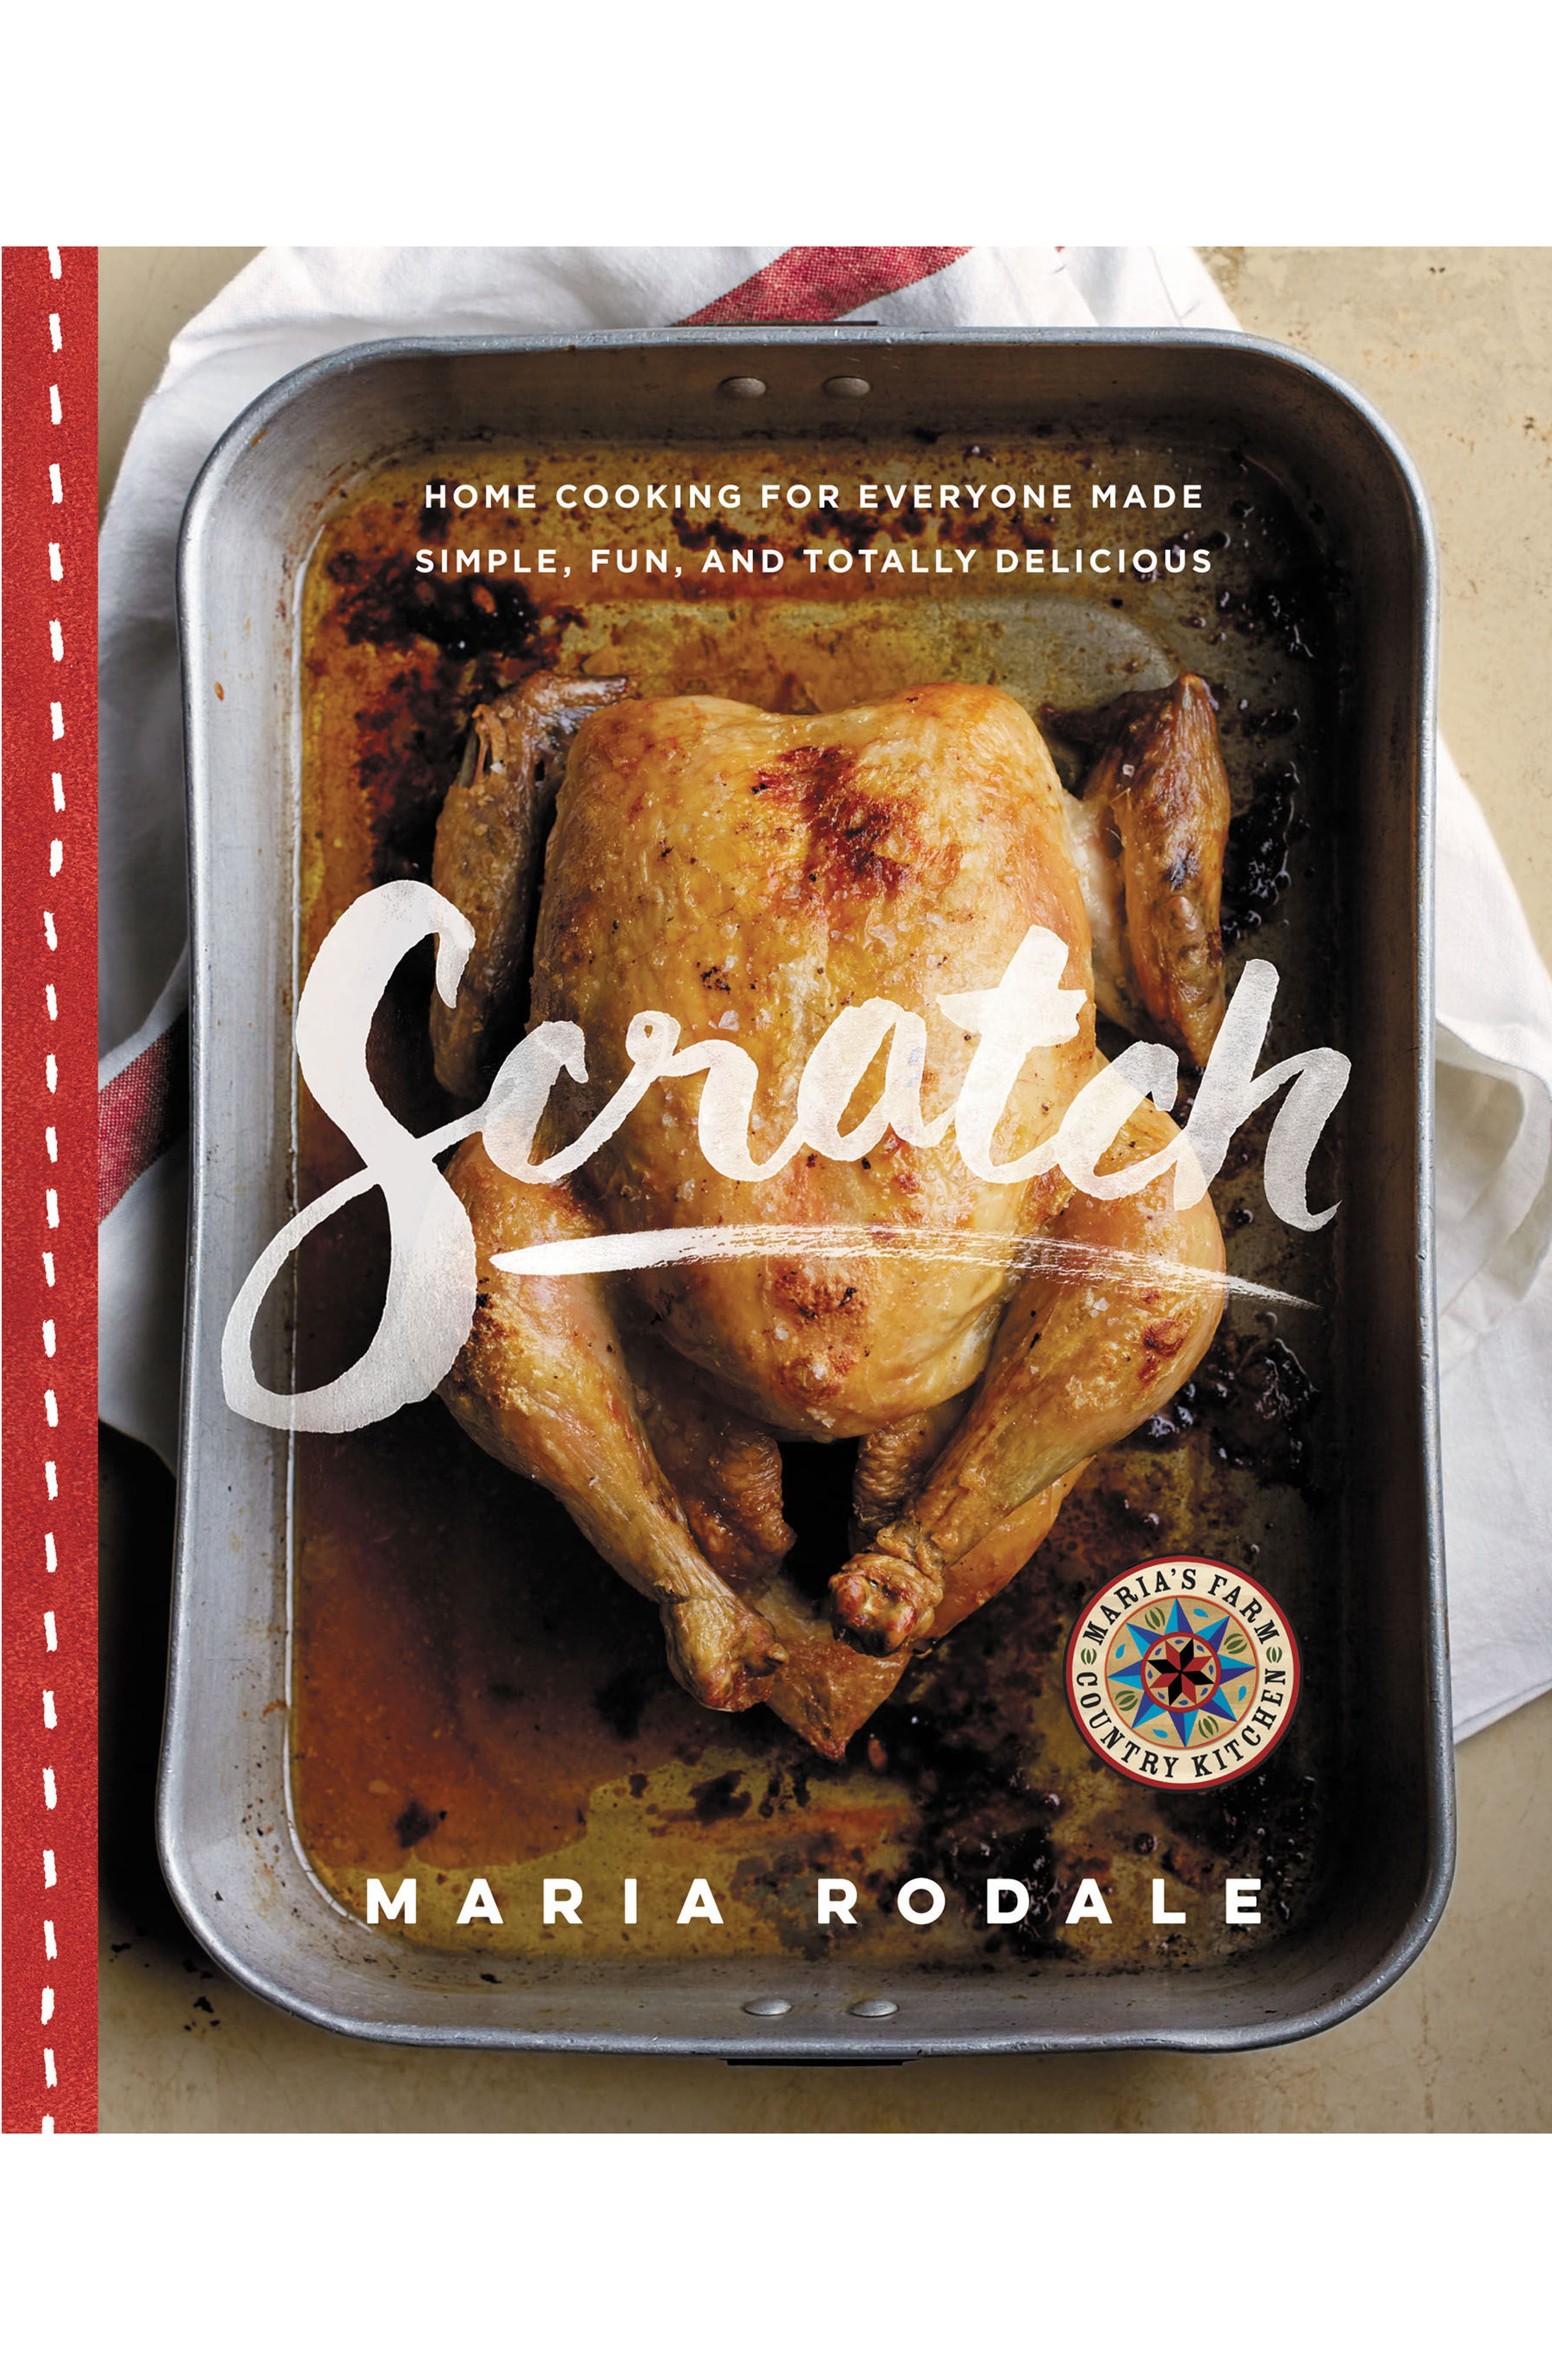 Alternate Image 1 Selected - Scratch: Home Cooking for Everyone Made Simple, Fun, and Totally Delicious Cookbook